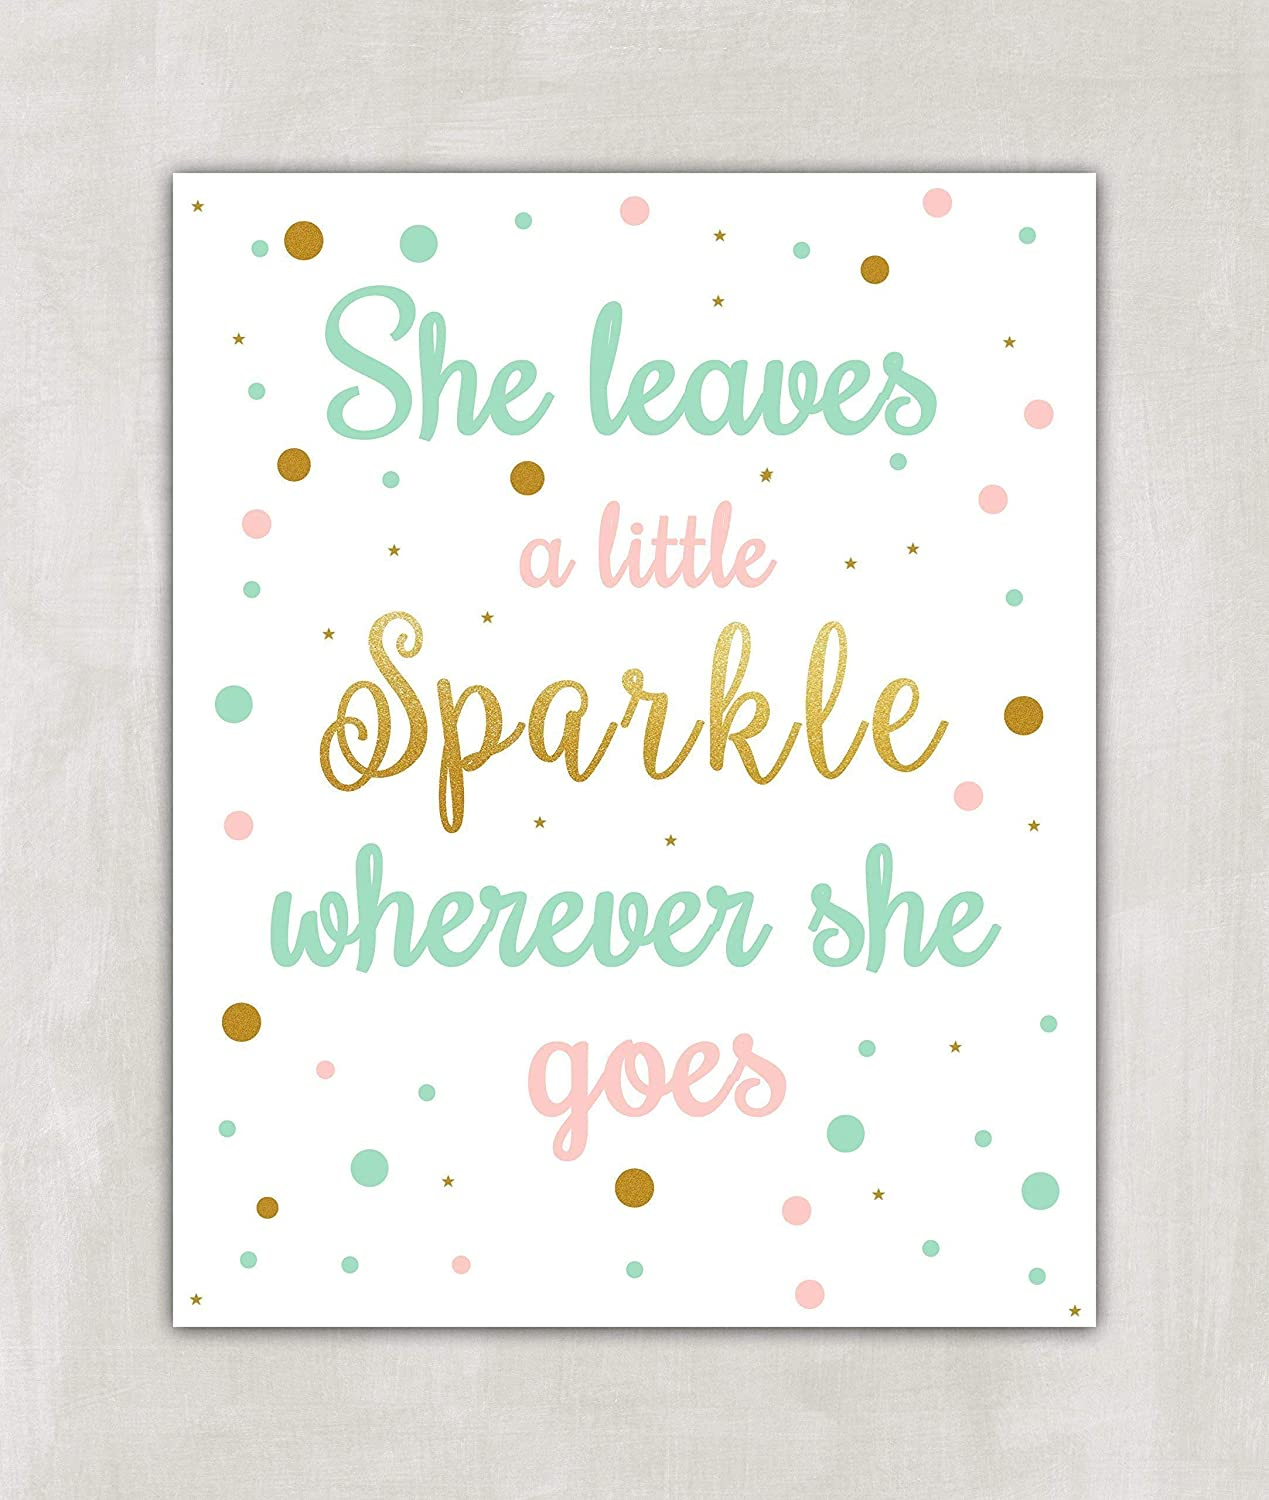 picture regarding She Leaves a Little Sparkle Wherever She Goes Free Printable named She Leaves A Small Sparkle Anywhere She Goes - Nursery Wall Artwork Print 8x10 Unframed